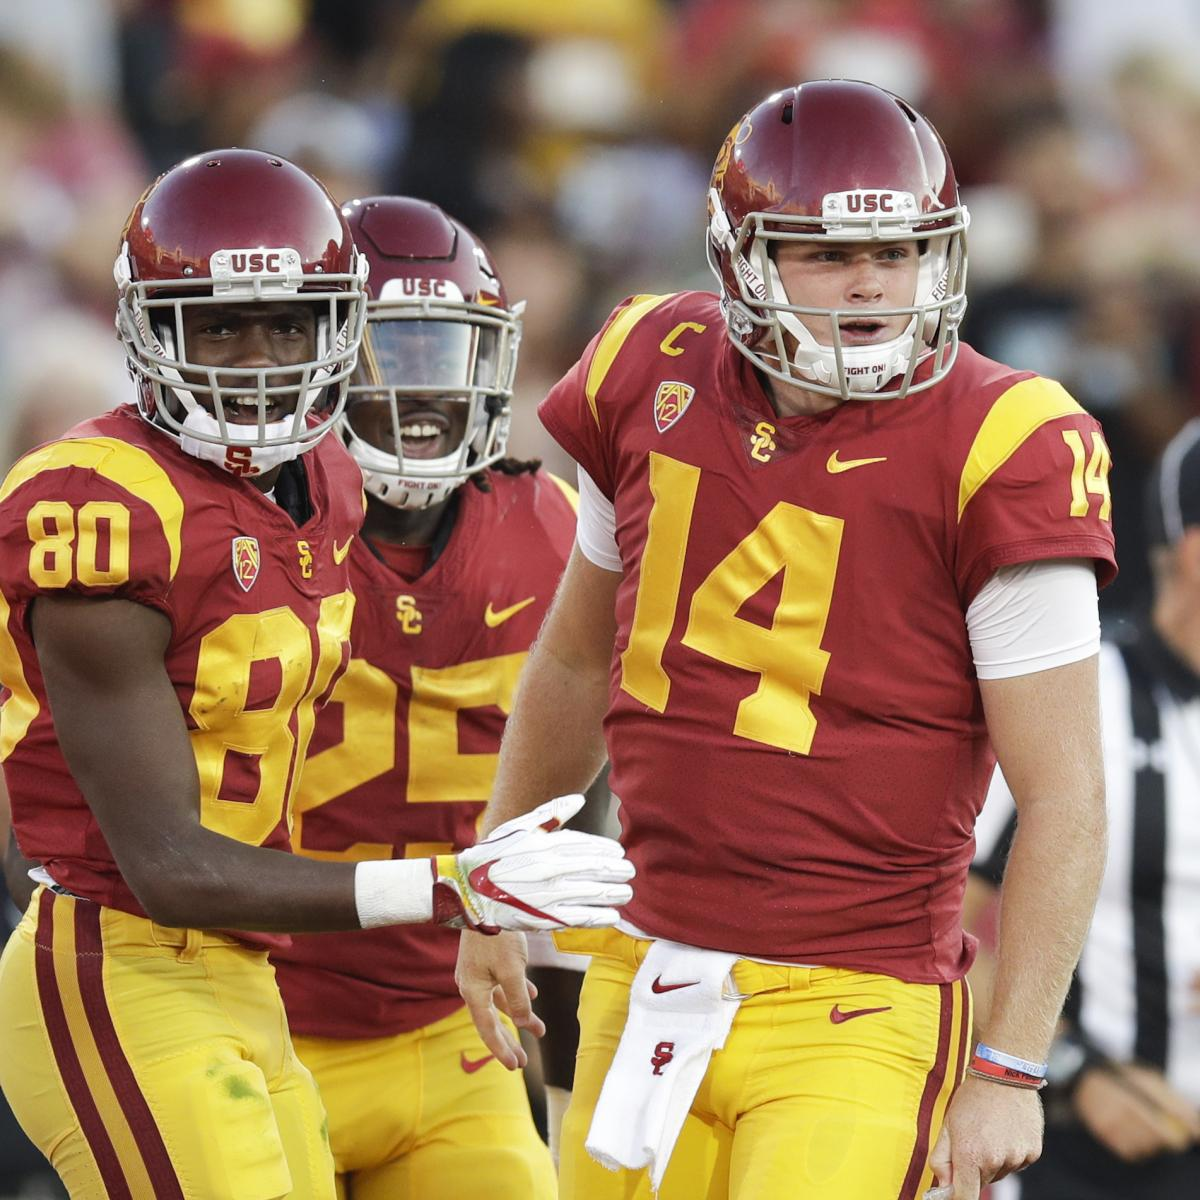 Texas Longhorns vs. USC Trojans: Odds, Analysis, College ...